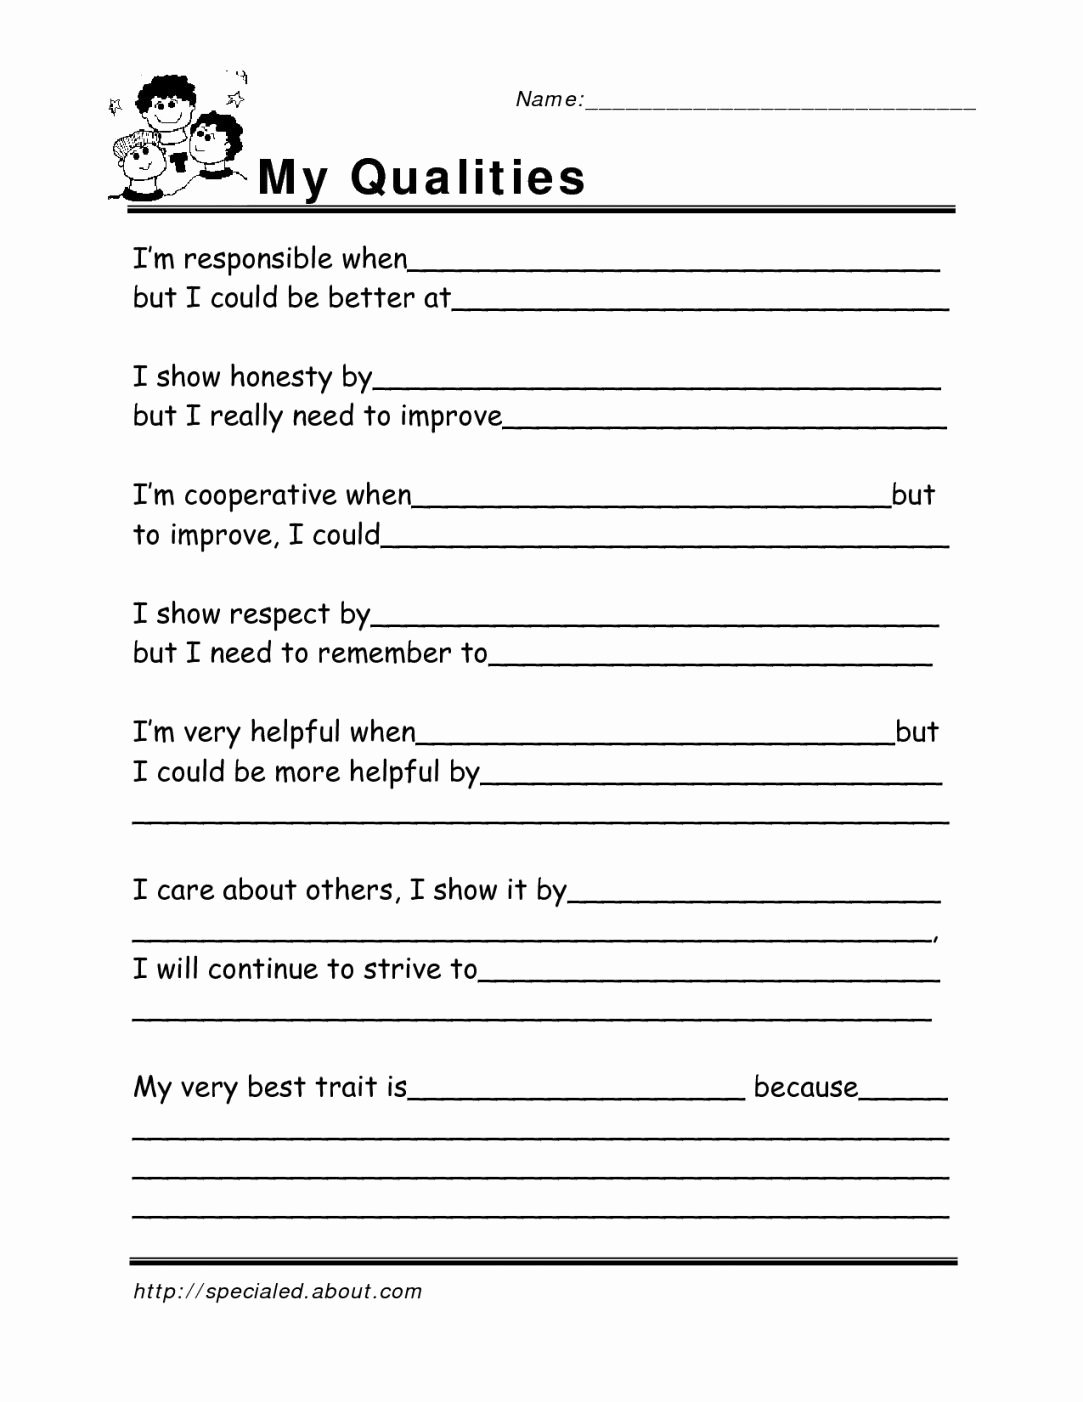 Life Skills Worksheets for Adults Ideas Life Skills Worksheets for Adults Money